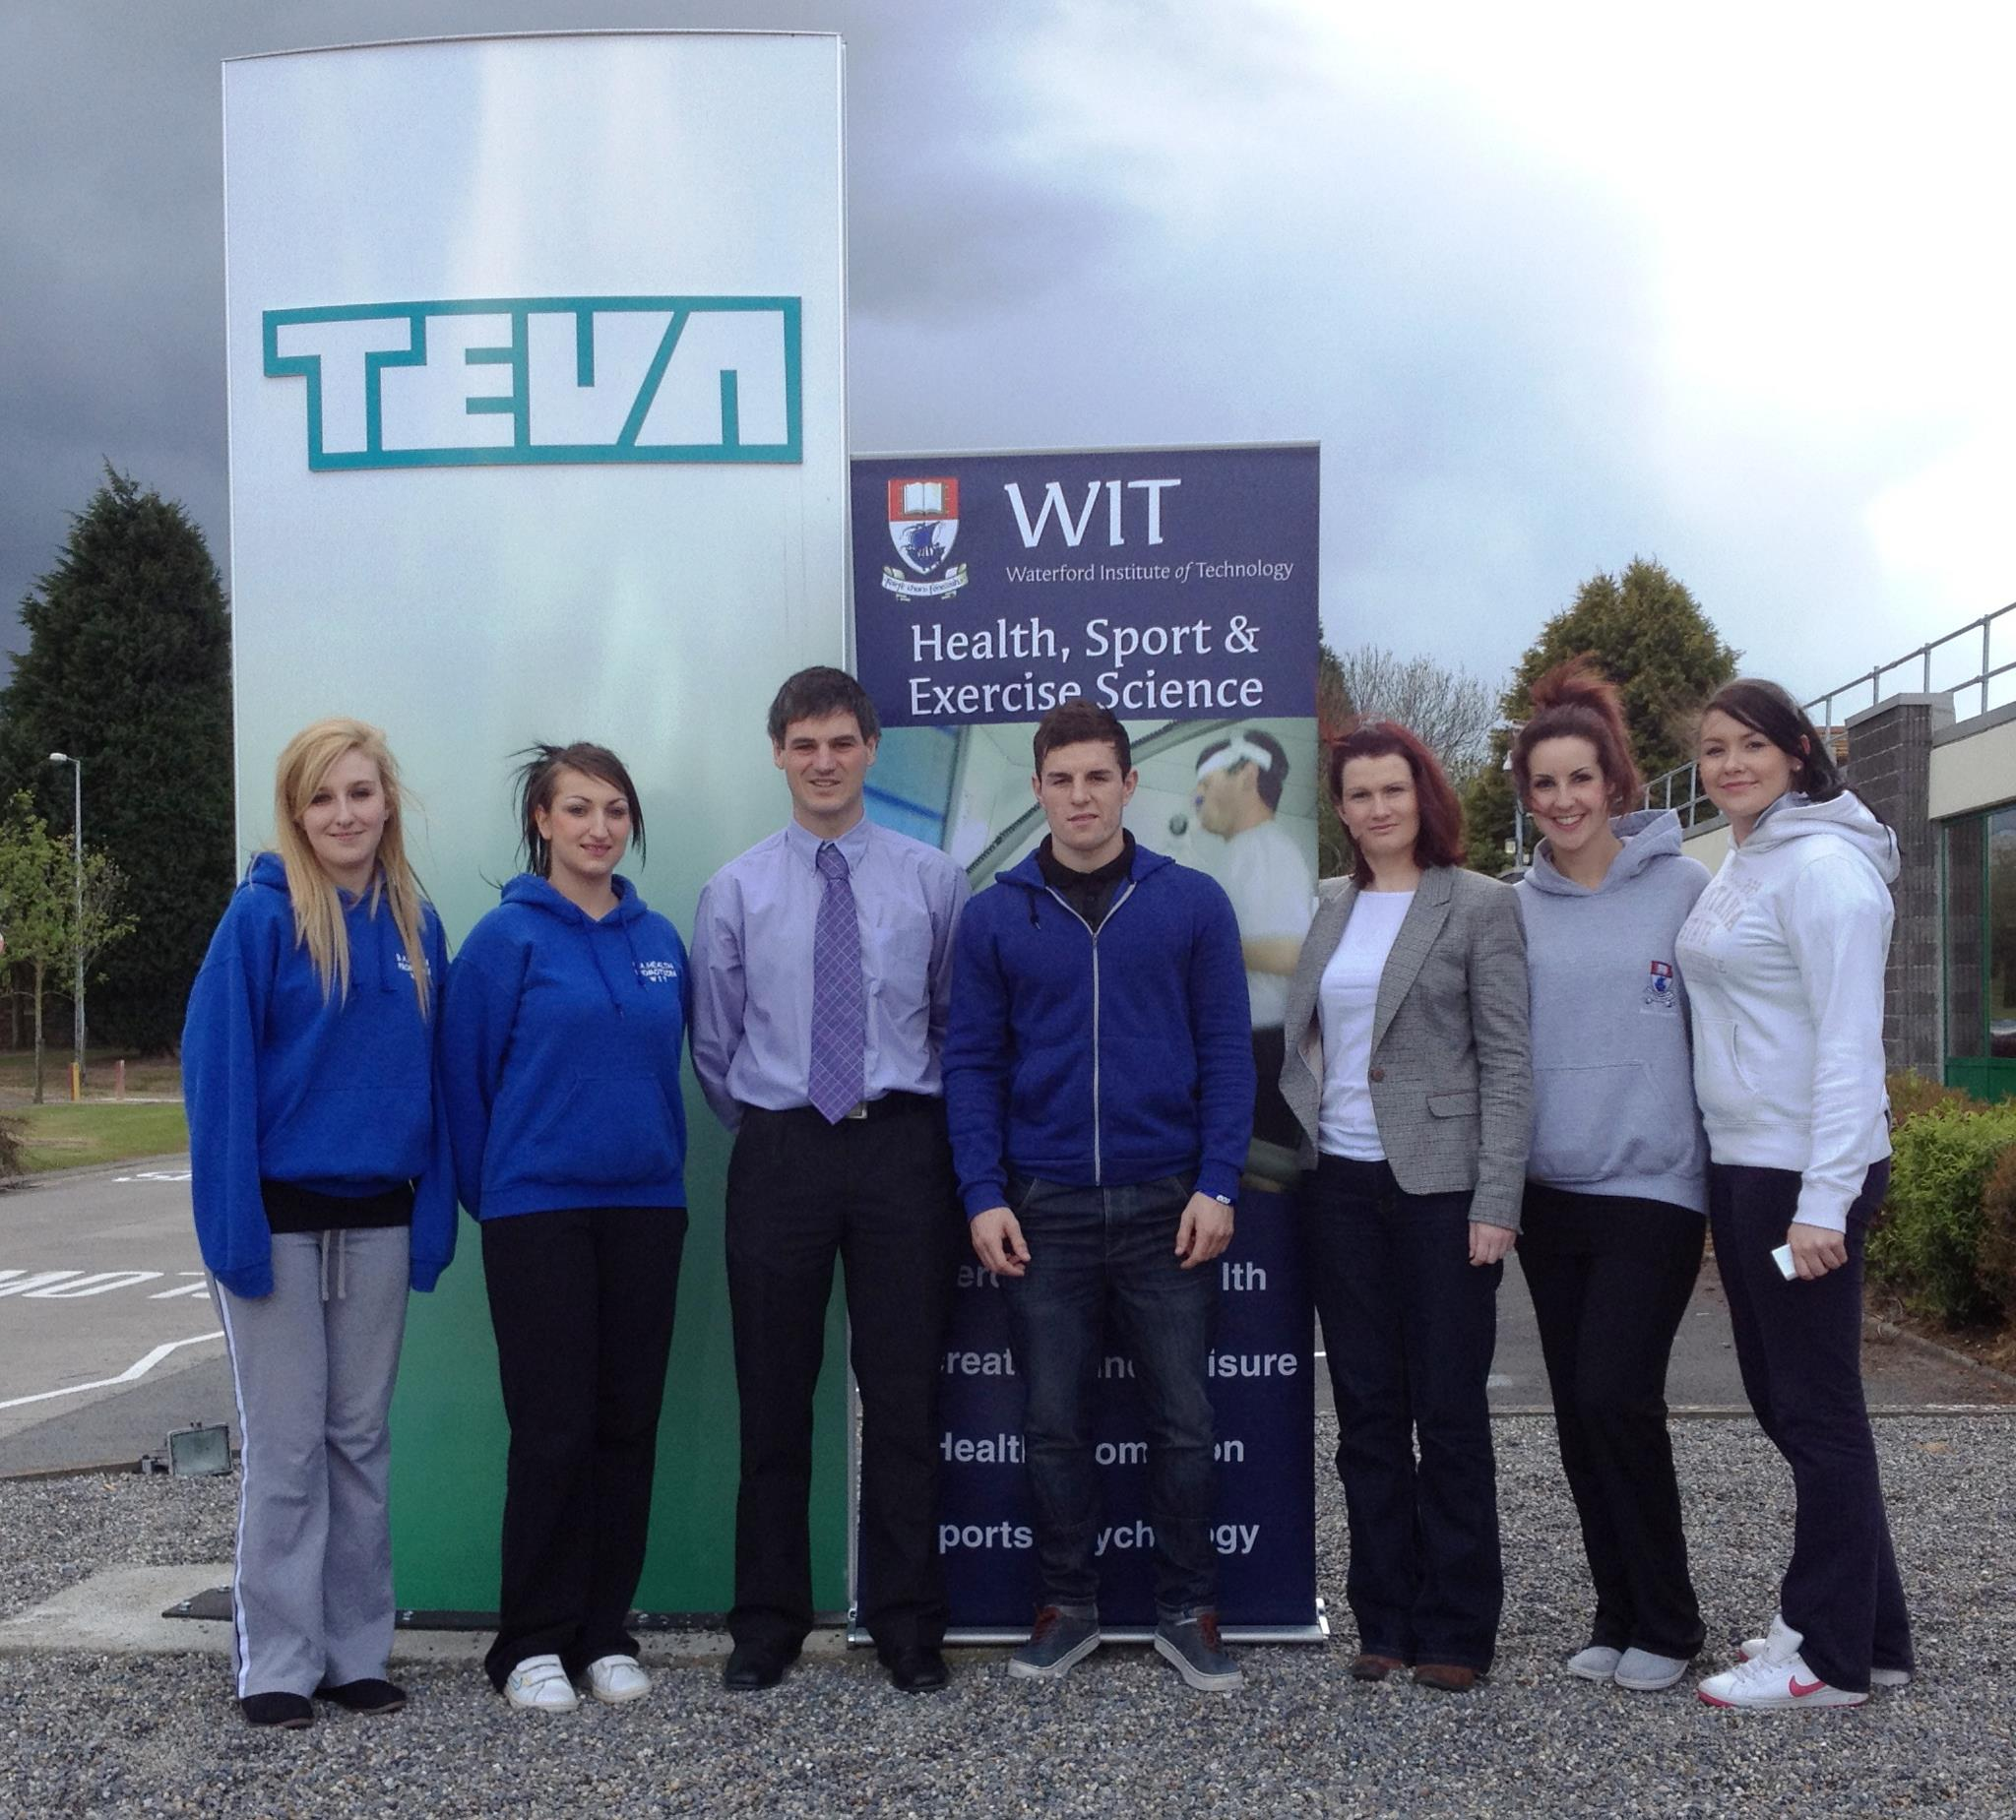 Pictured with the students are Aubrey Storey (lecturer) and Claire Foran (TEVA).